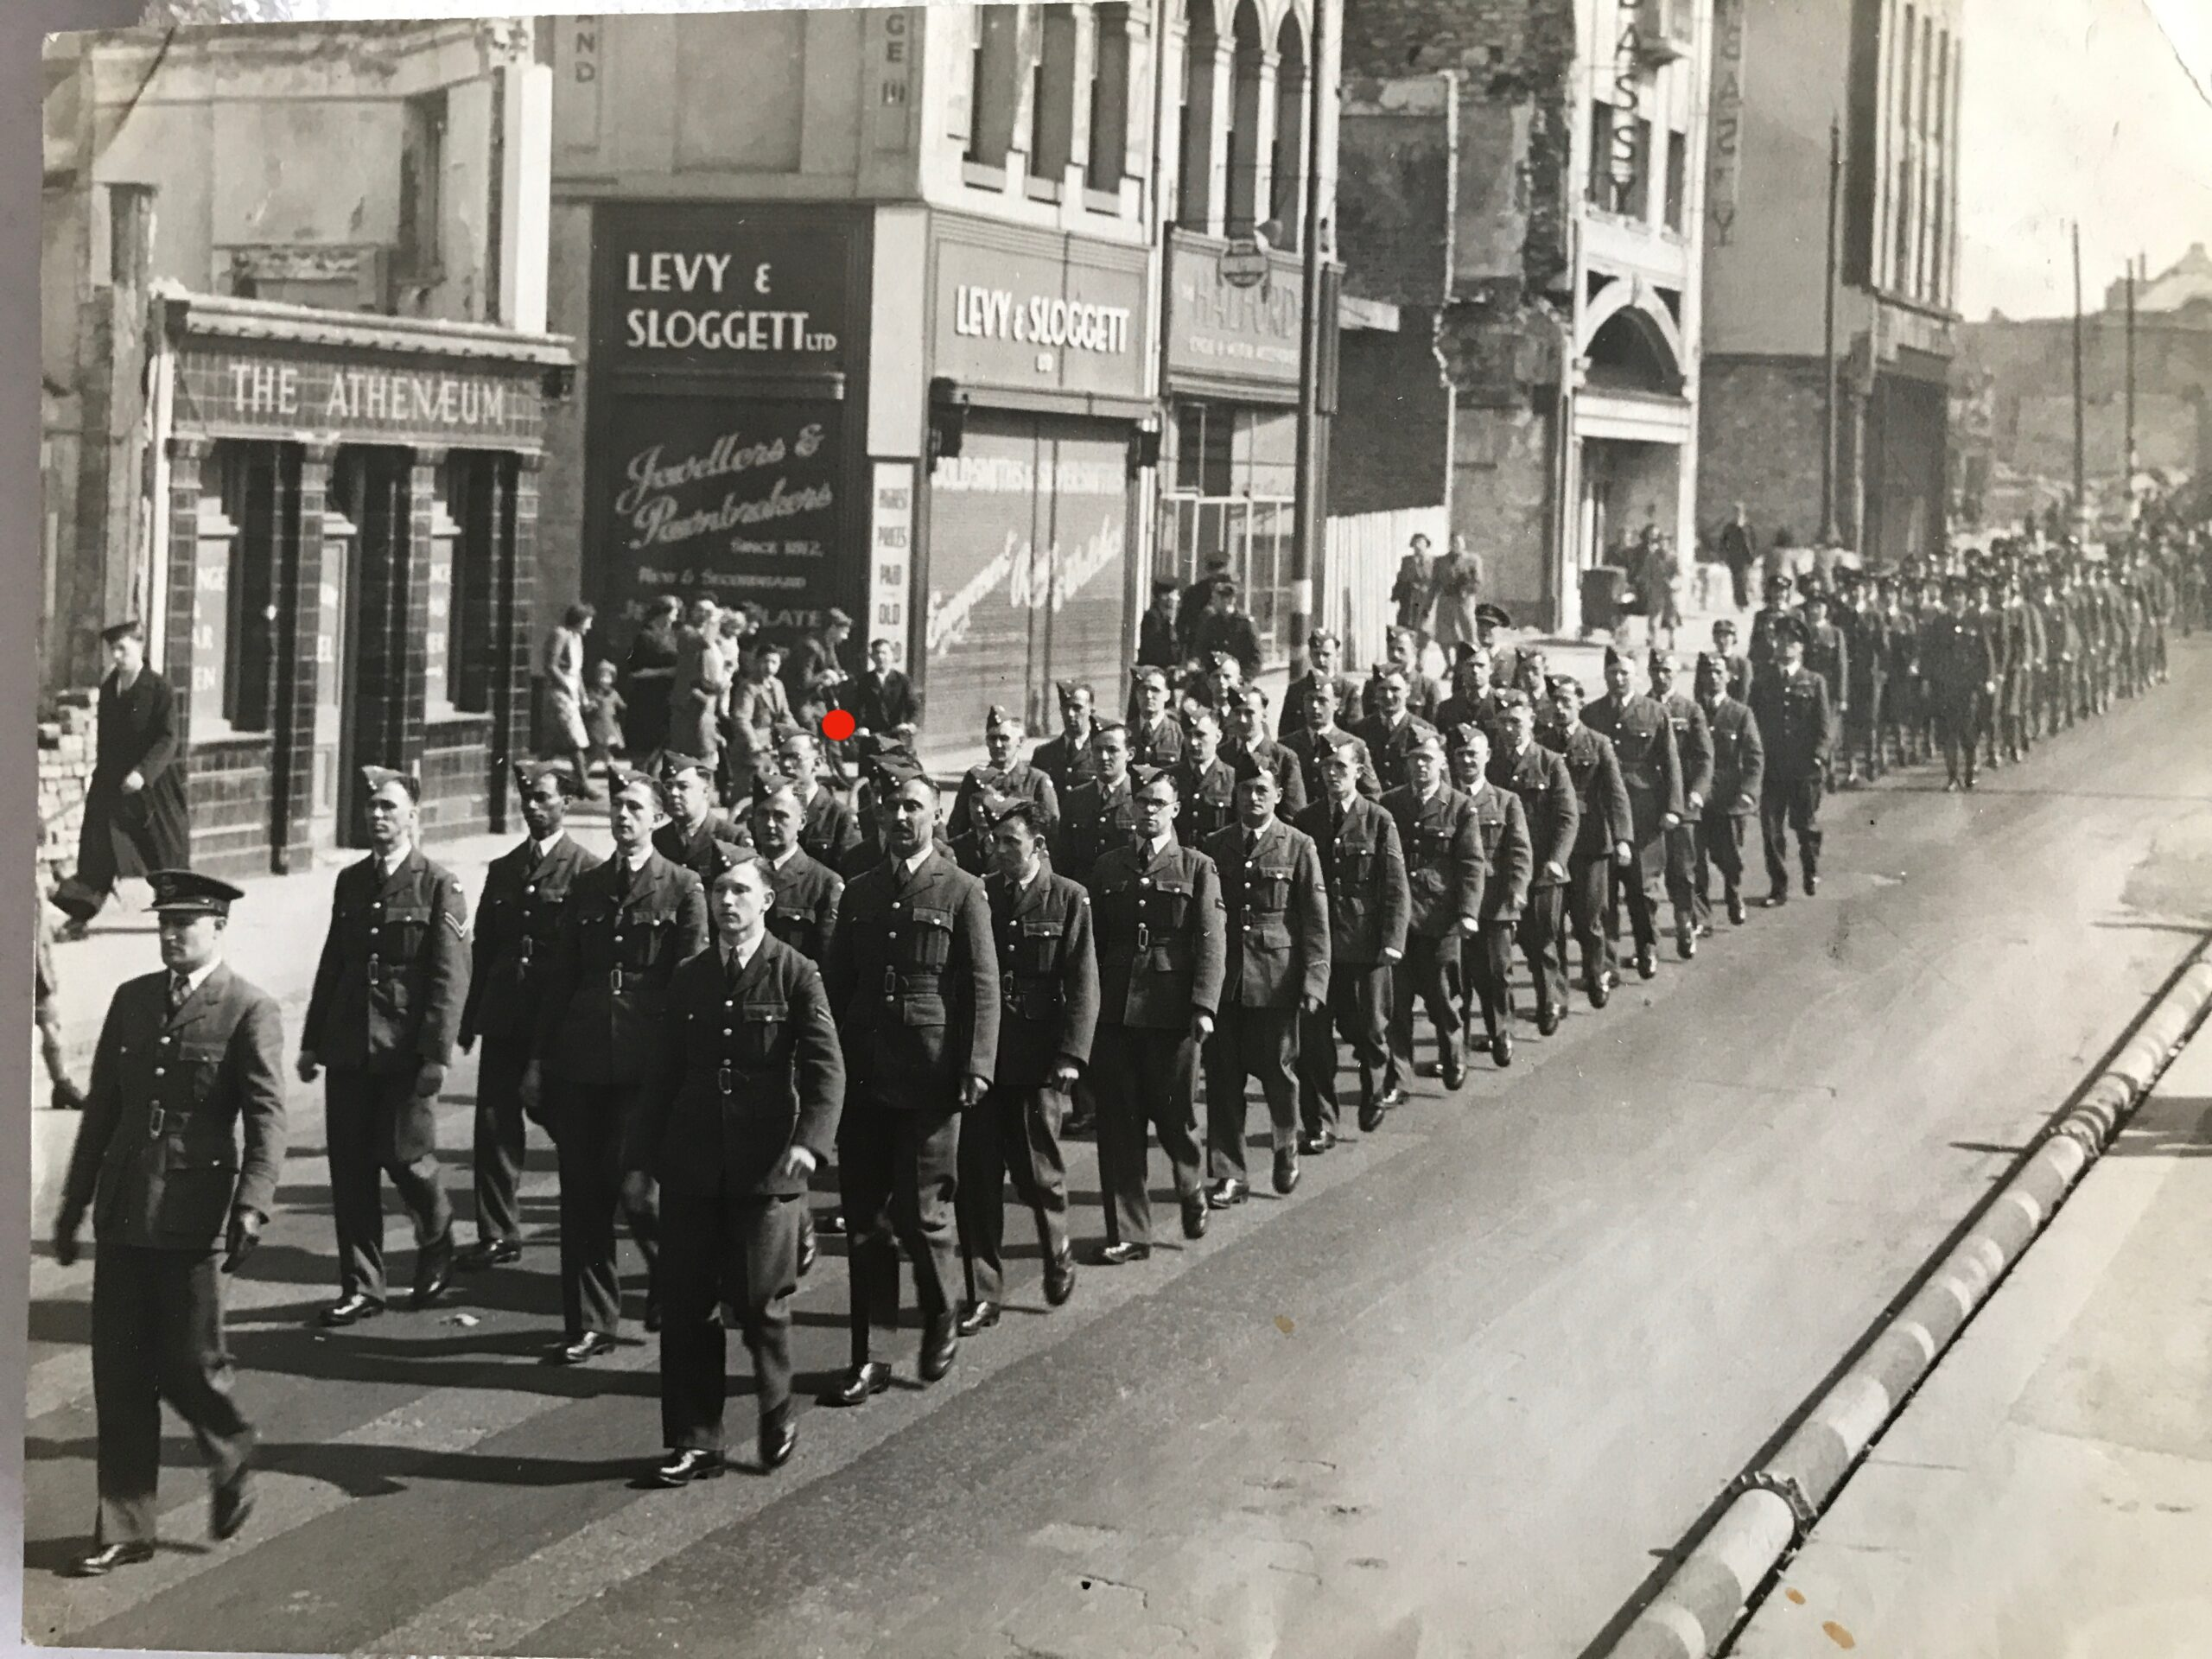 RAF march in Plymouth, Jim Otterson